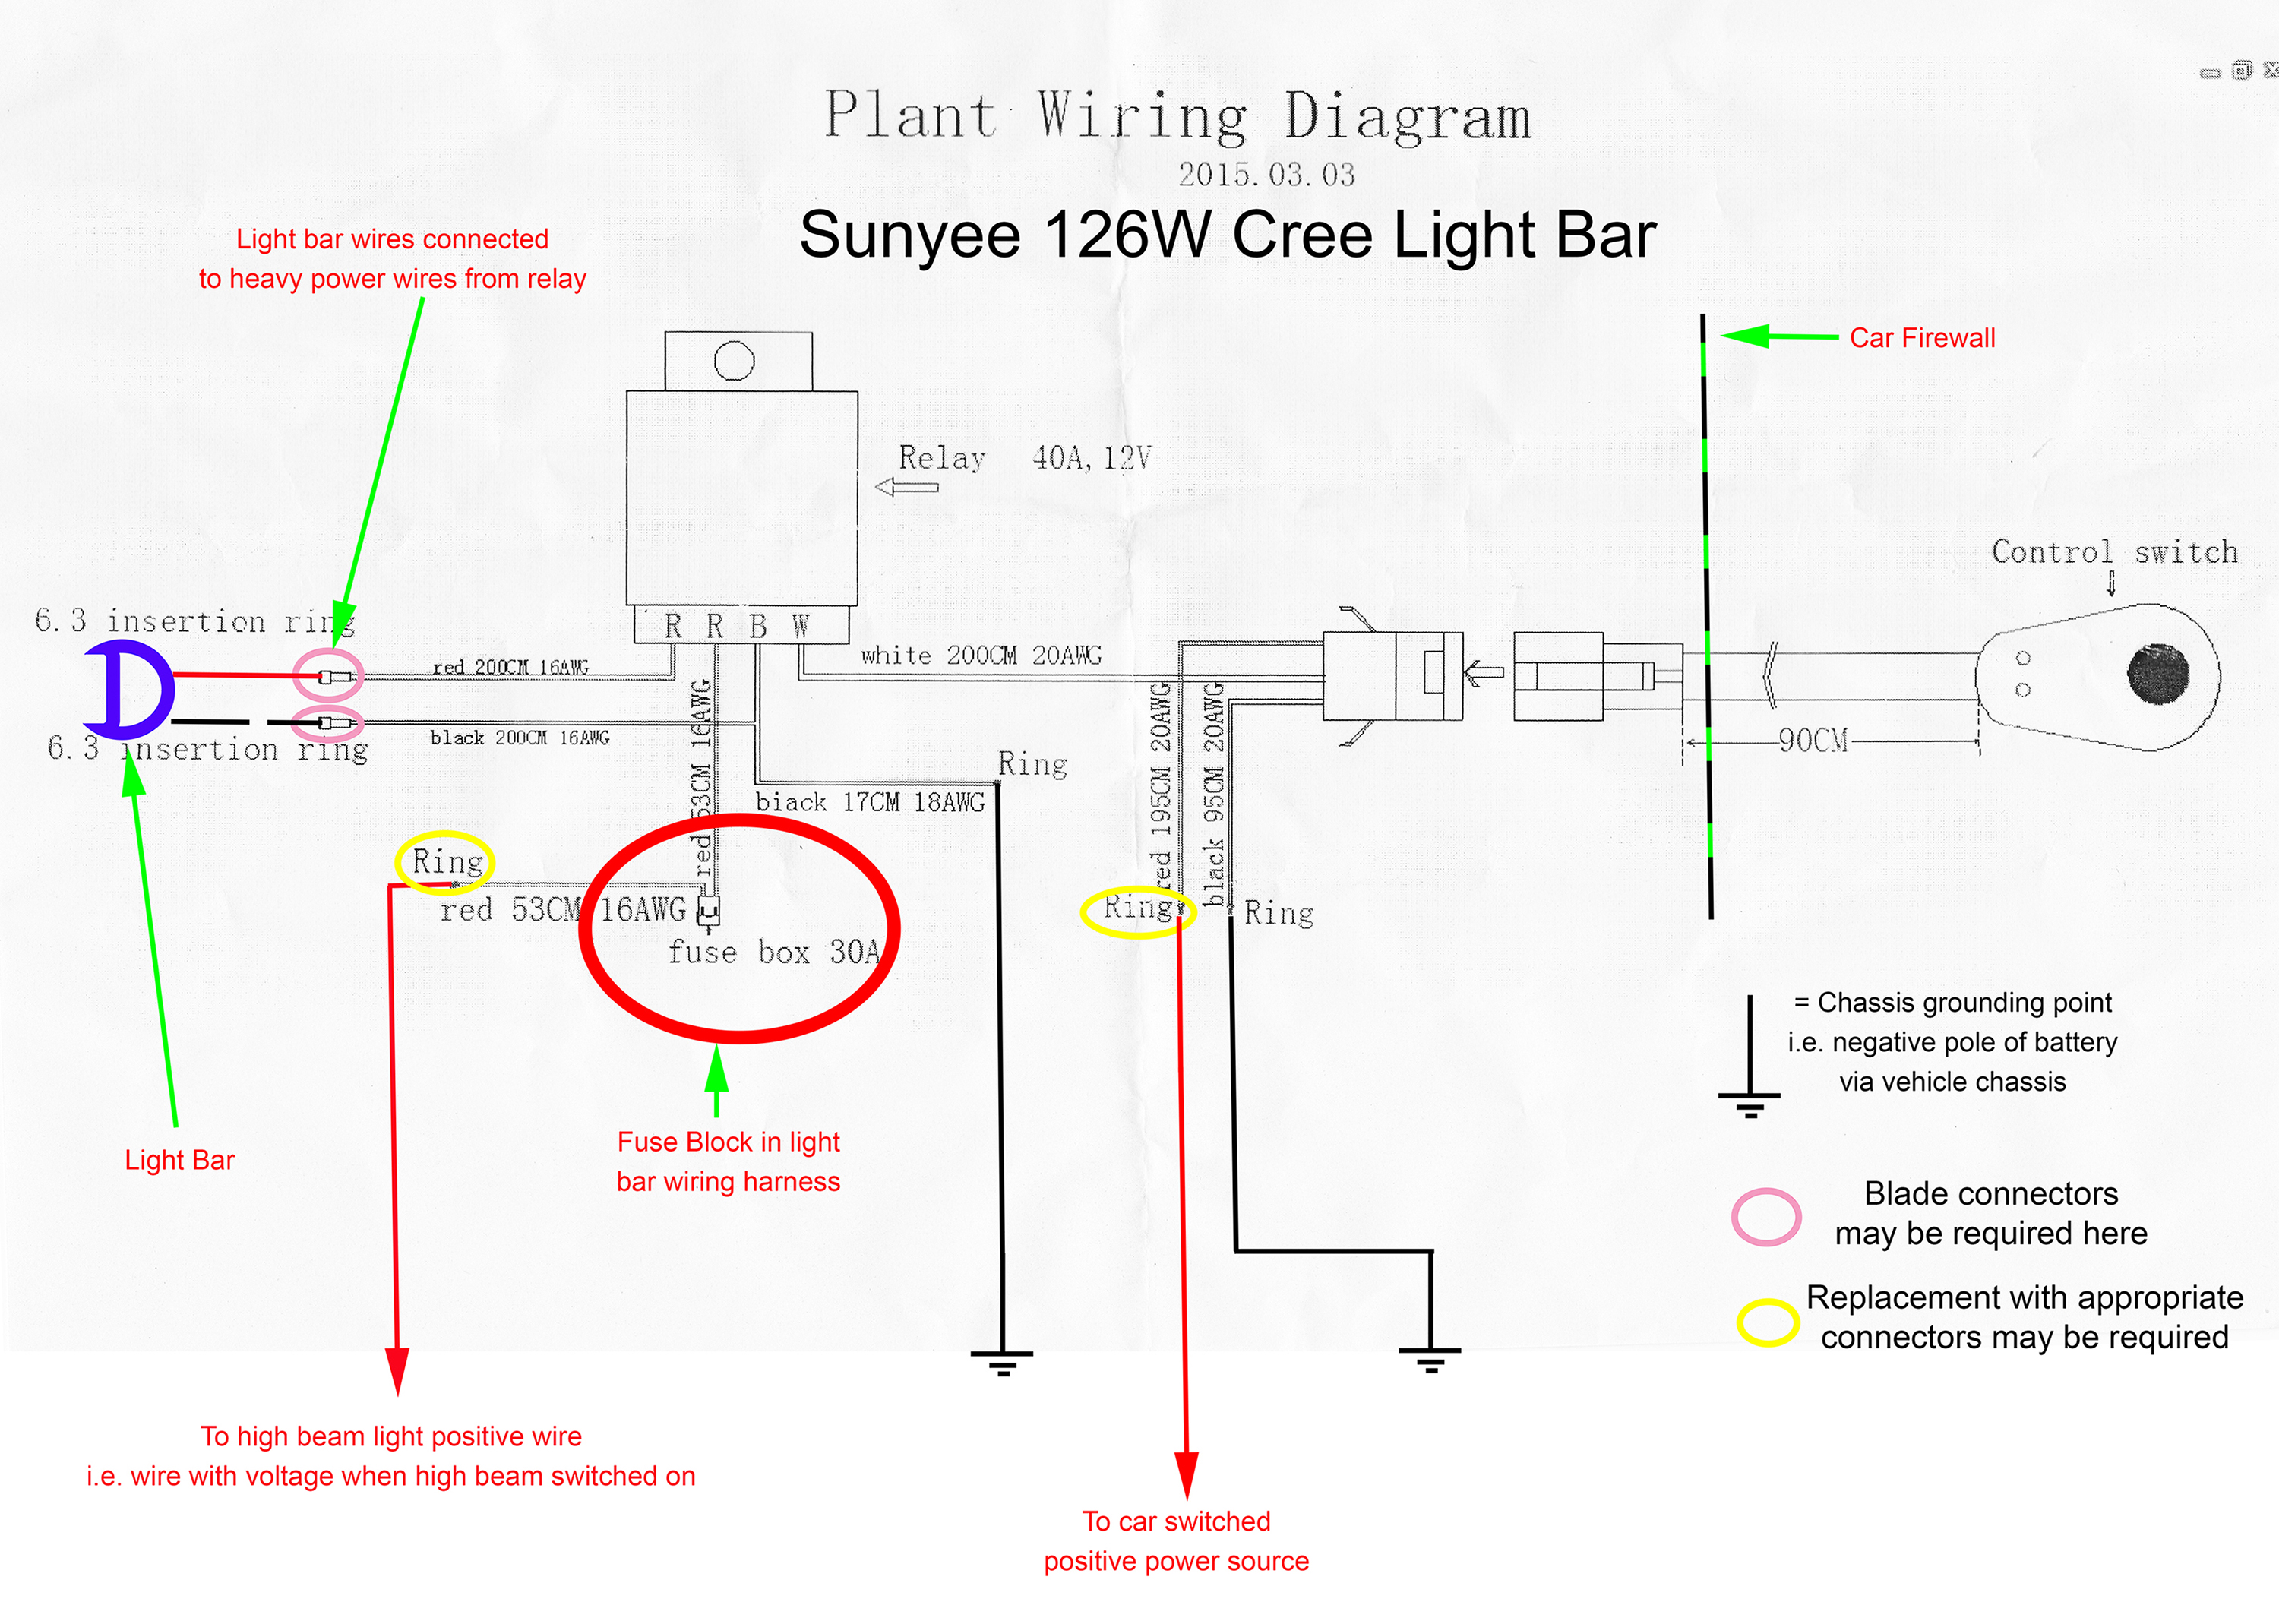 light bar wire diagram light image wiring diagram install sunyee cree 126w light bar sg ii forester page 3 on light bar wire diagram